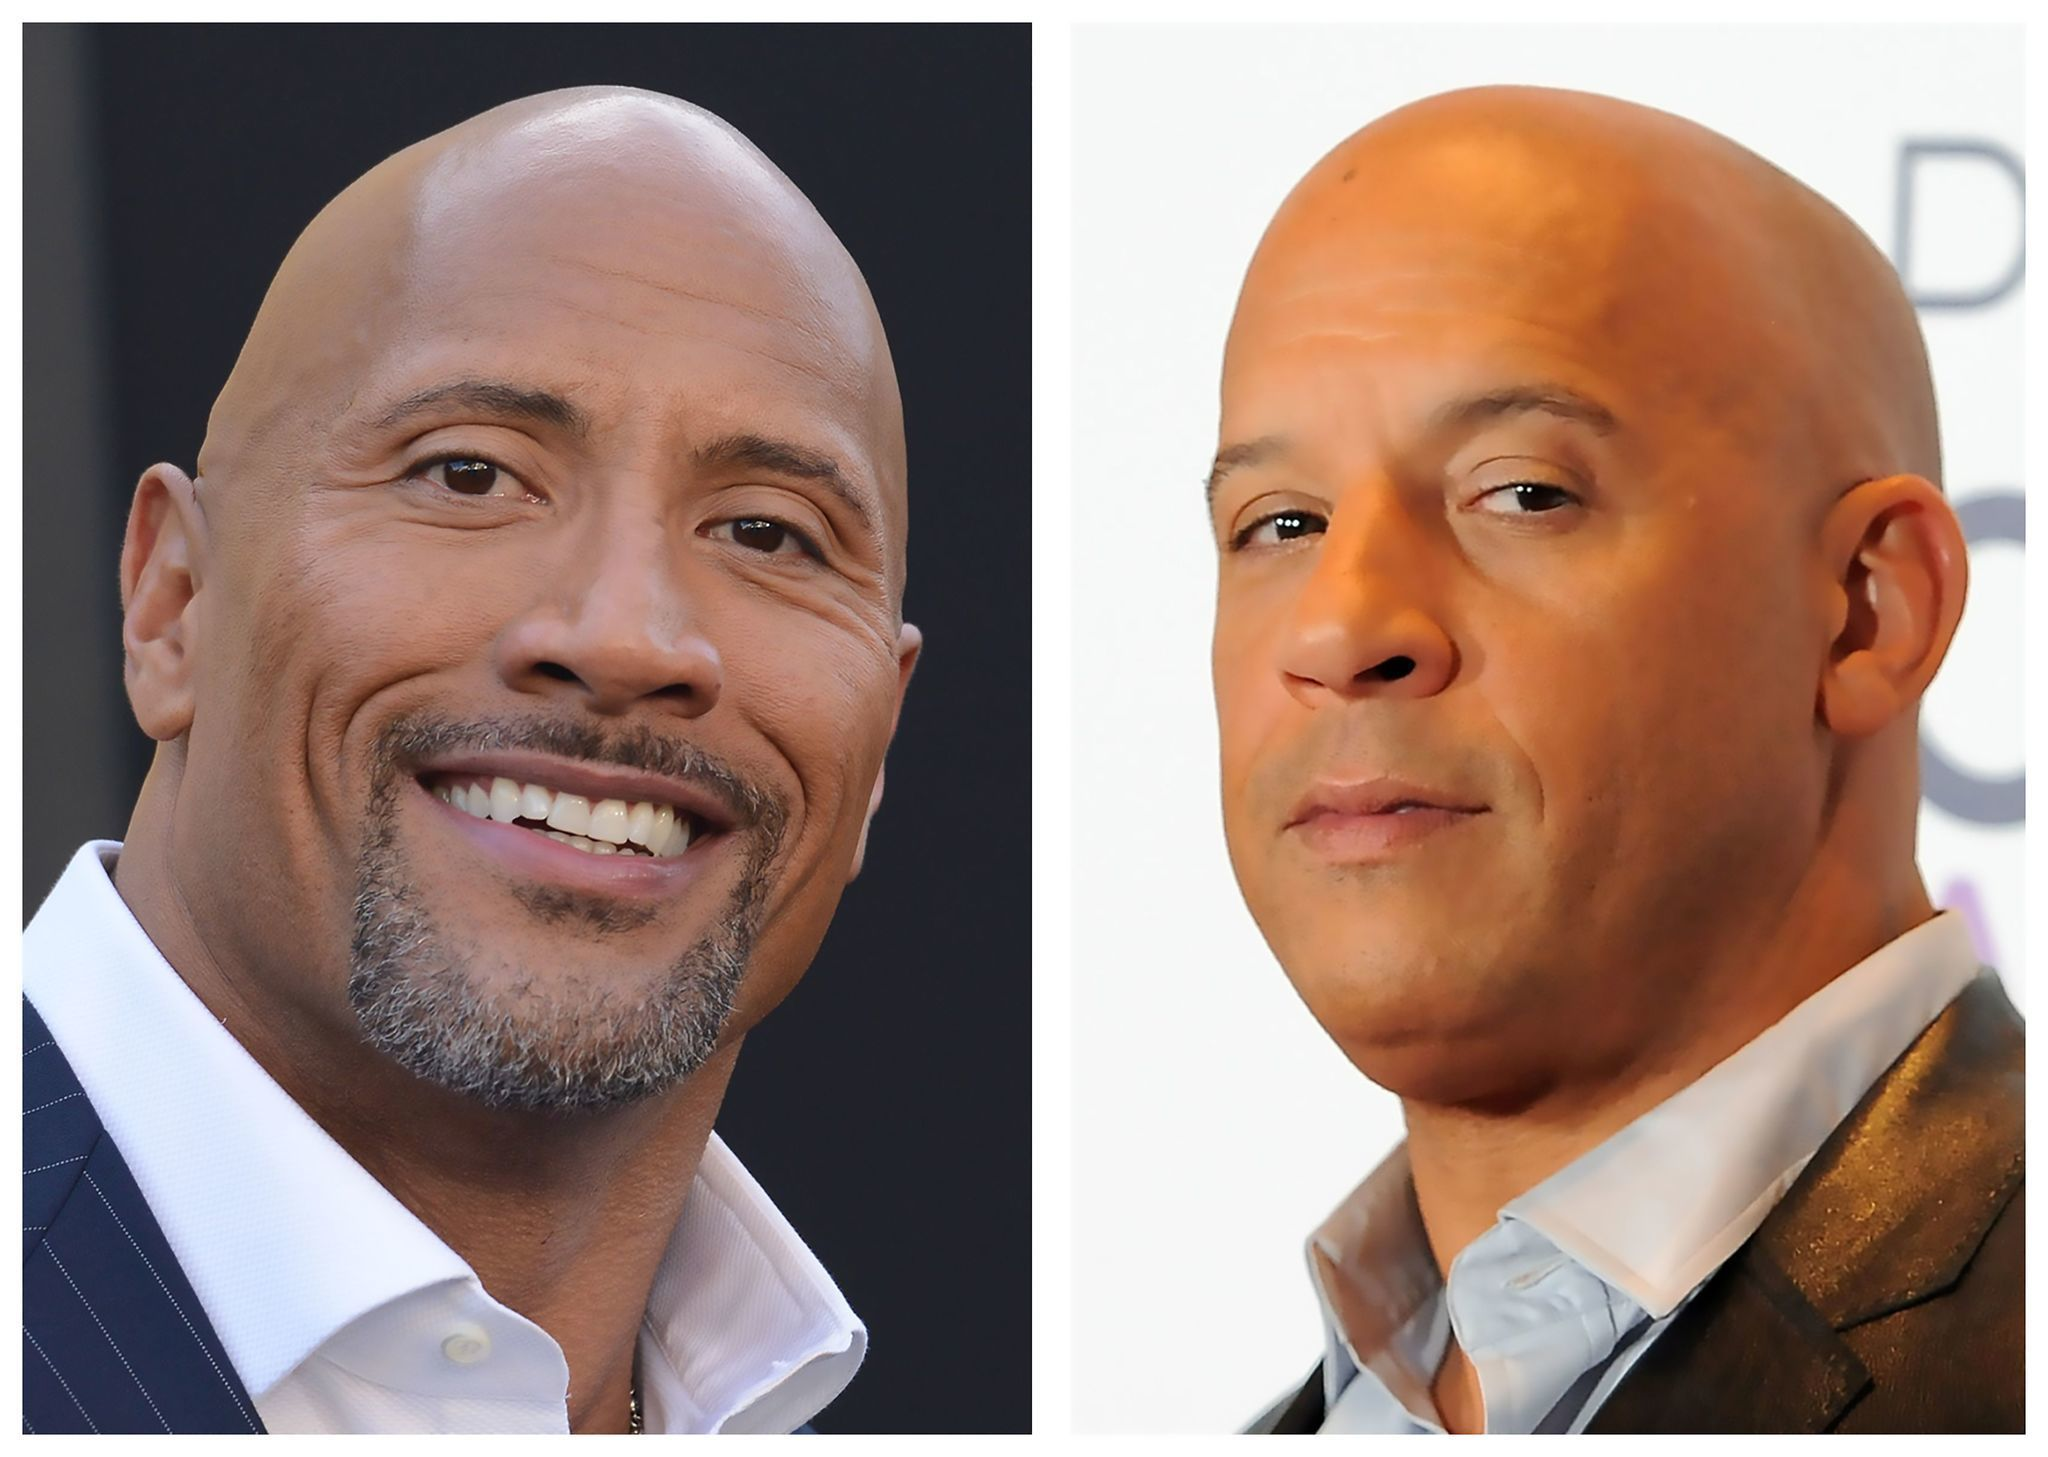 fast 8 feud heats up as dwayne johnson and vin diesel reportedly face off la times